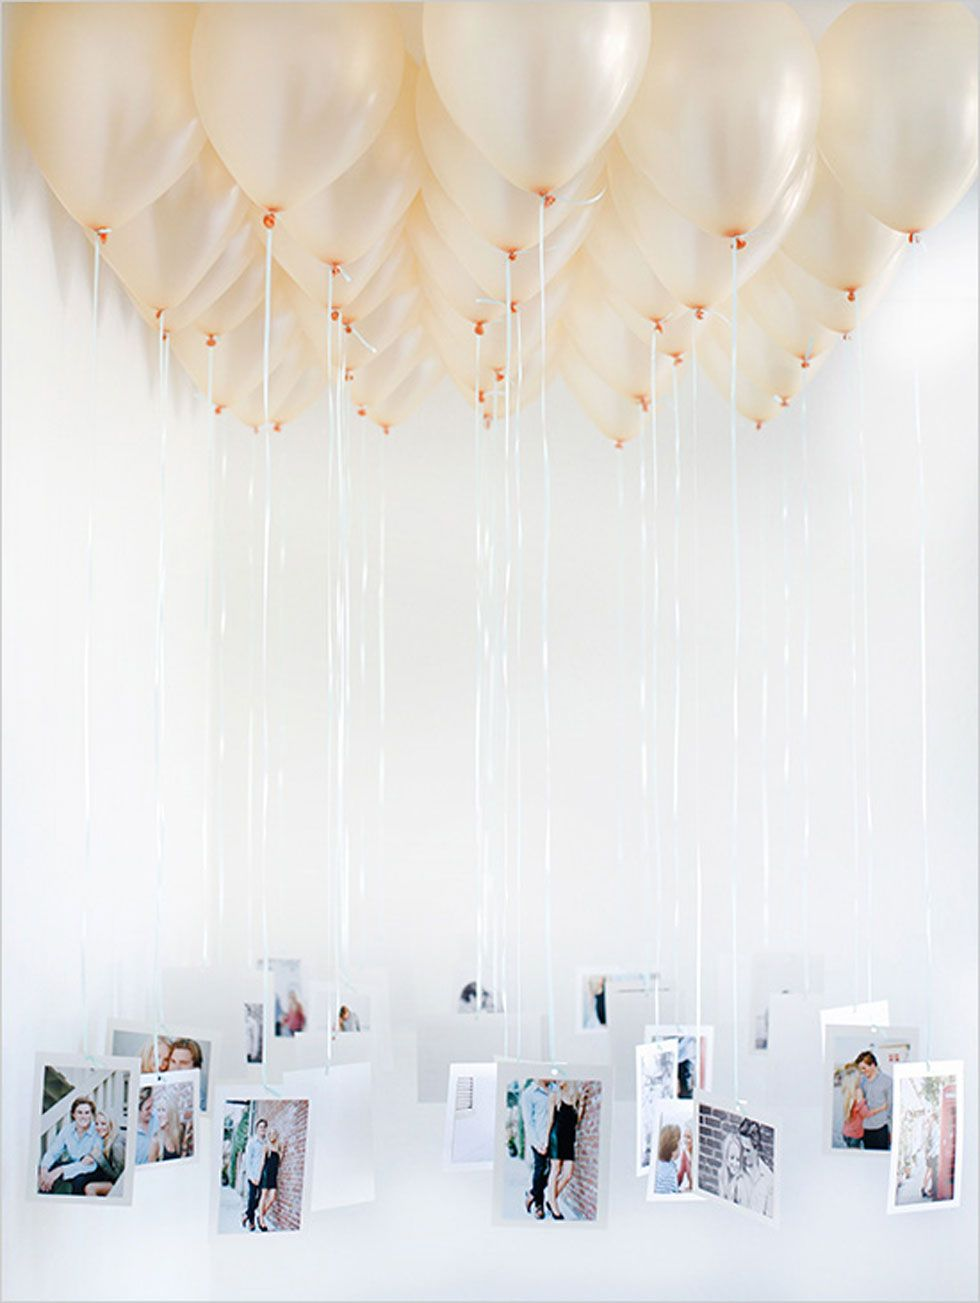 55 Creative Bridal Shower Ideas That Are as Special as the Bride-to ...